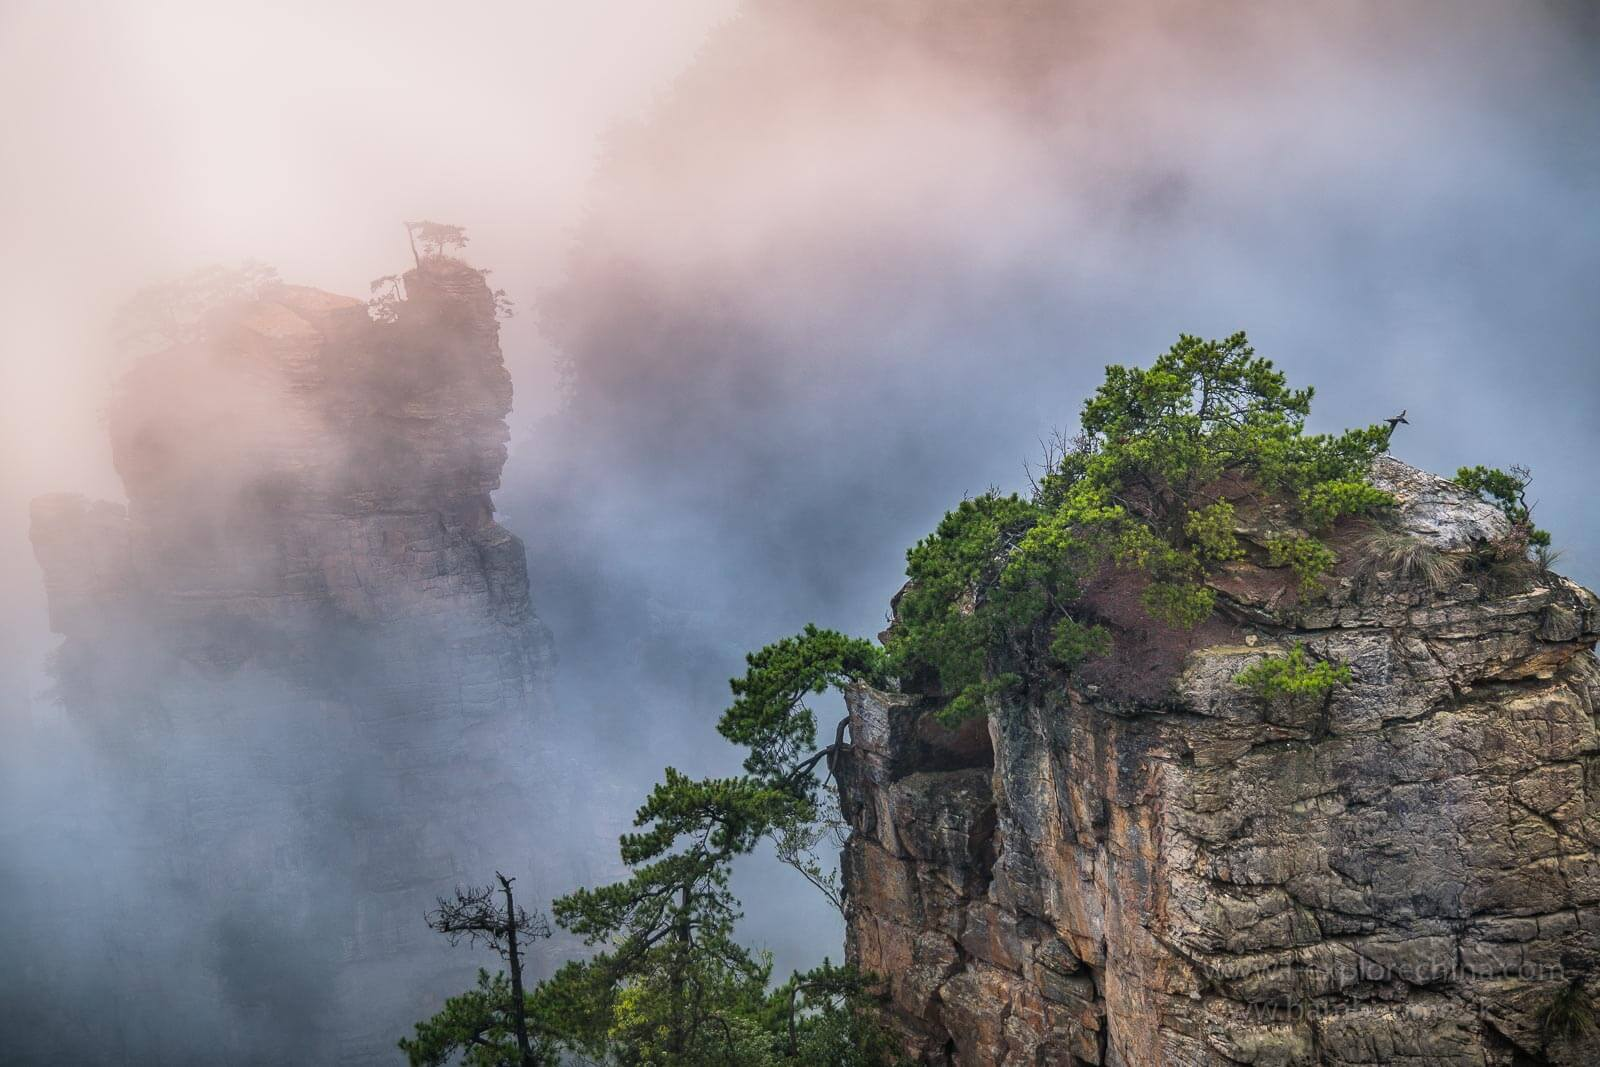 Wulingyuan national forest park in Hunan province, China